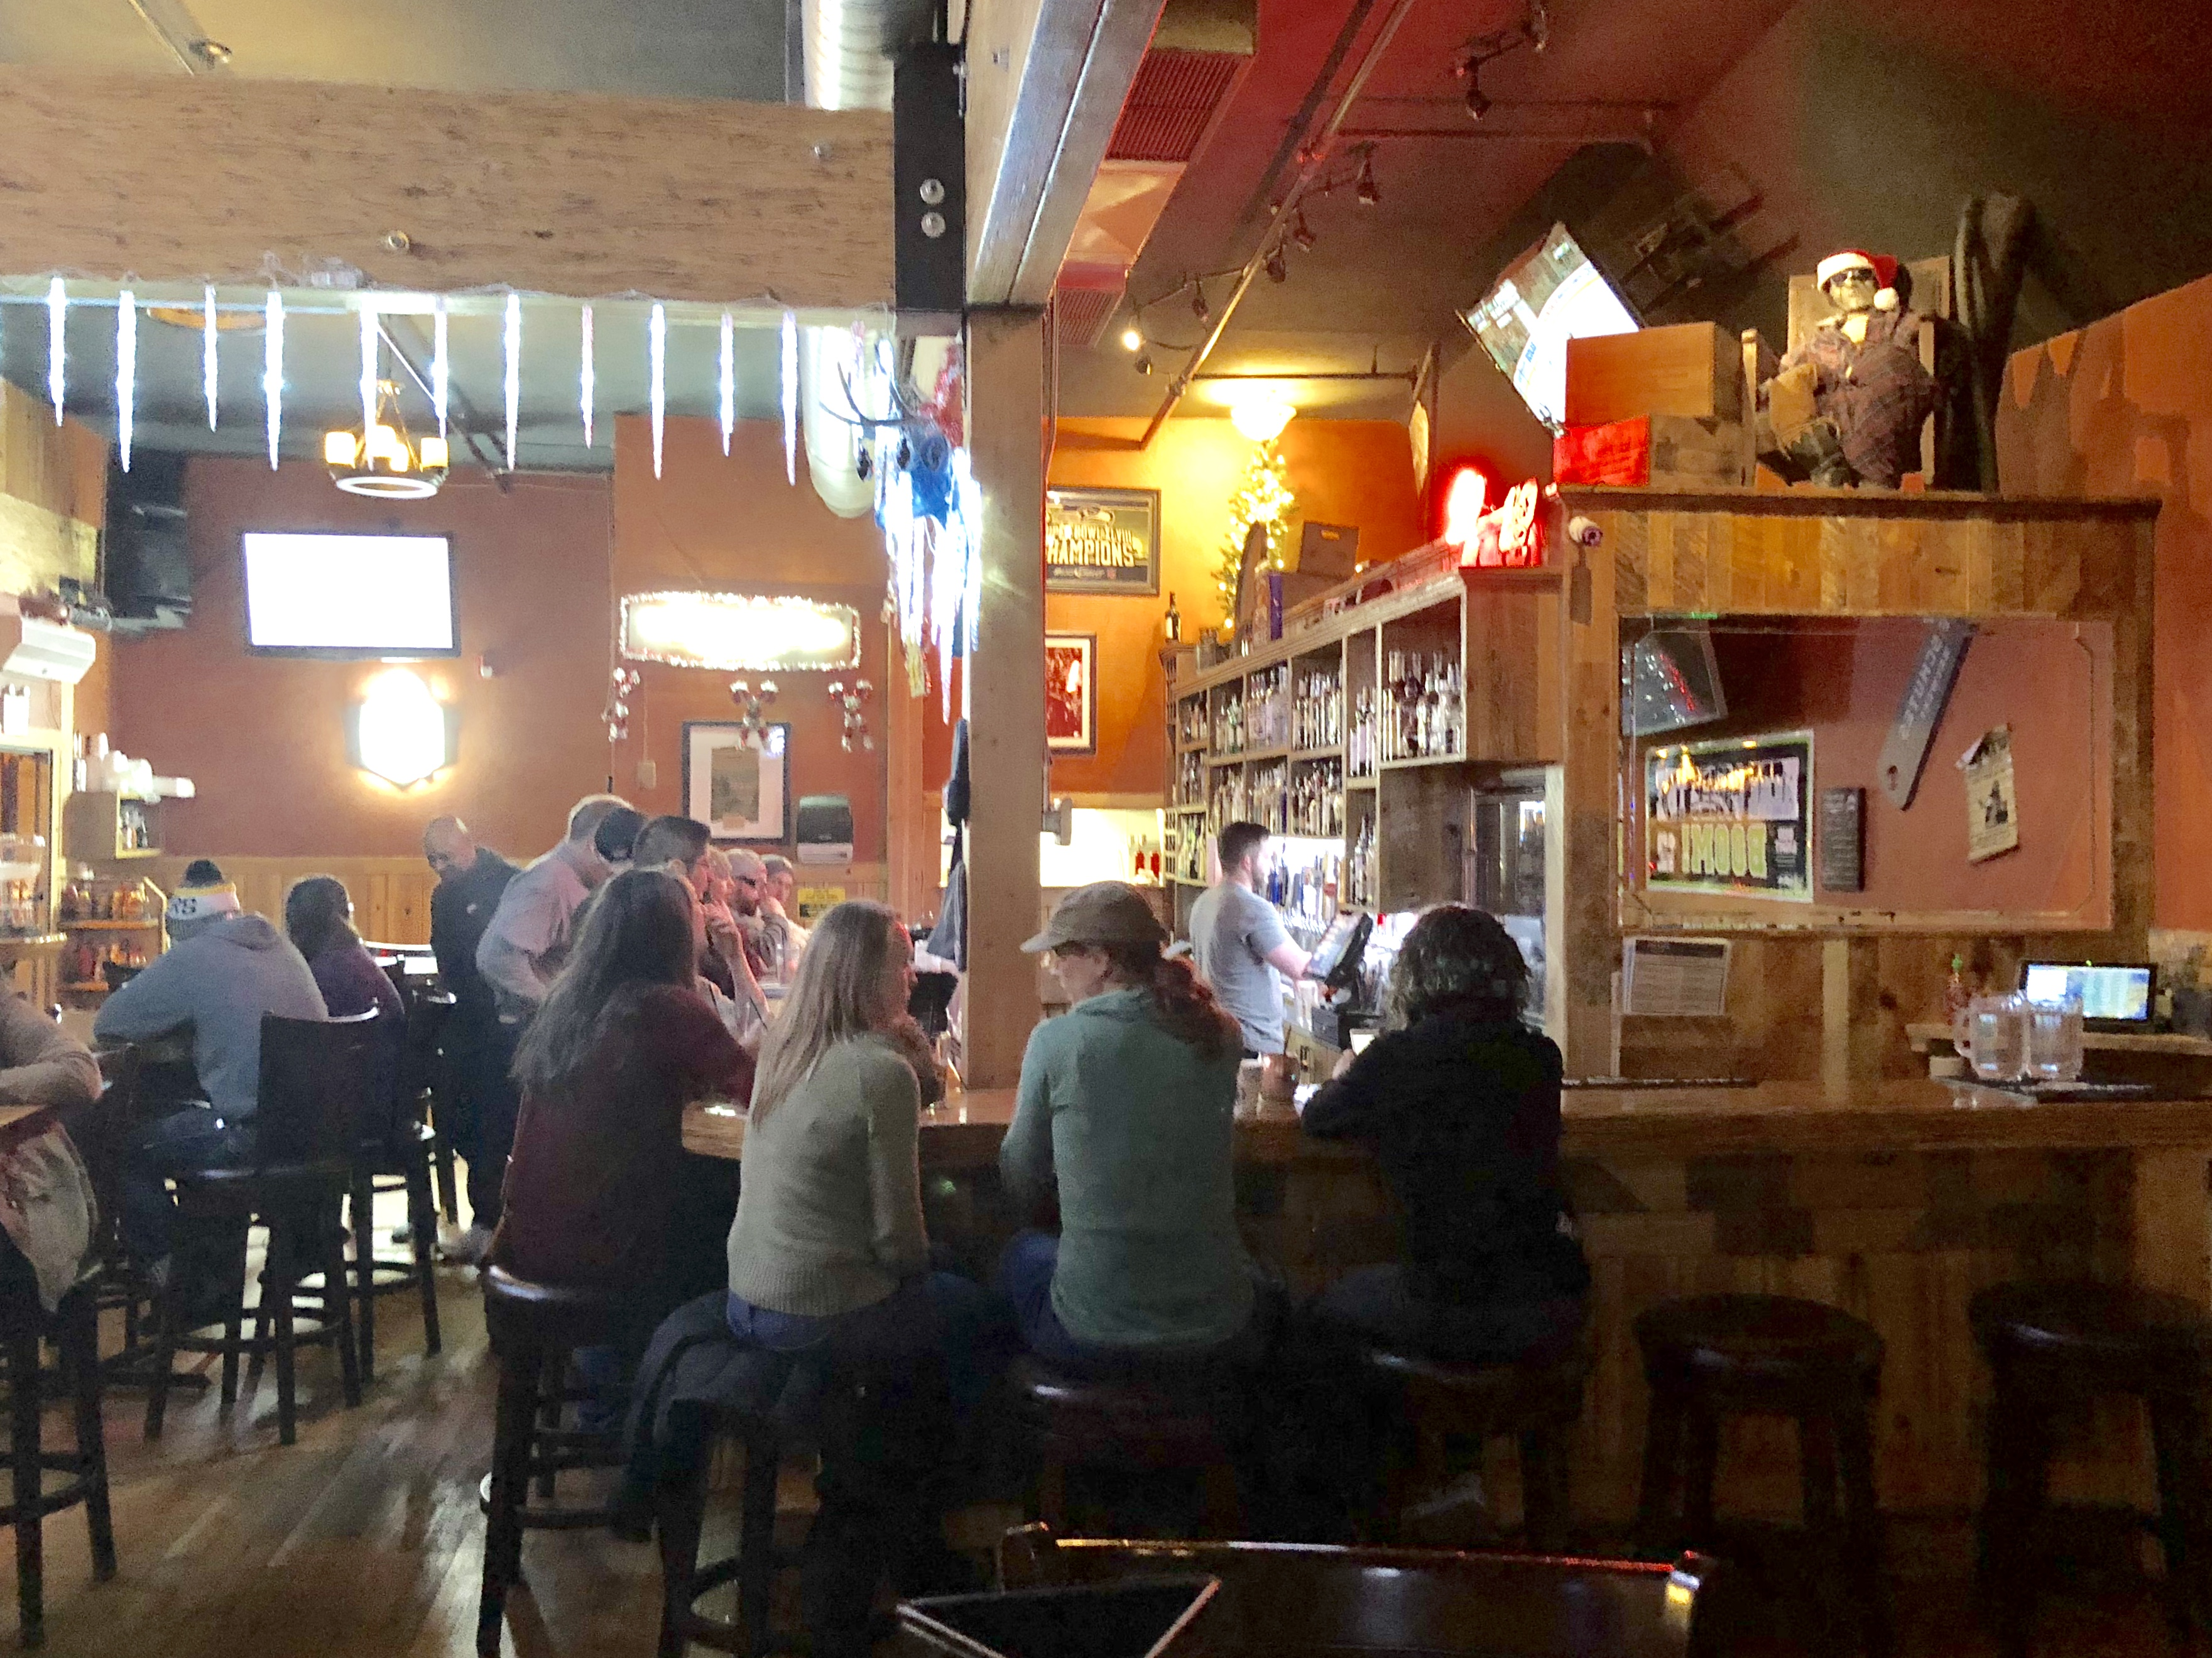 Photograph by Rianna Richards. The Loft Bar and Grill in Leavenworth. Blogs